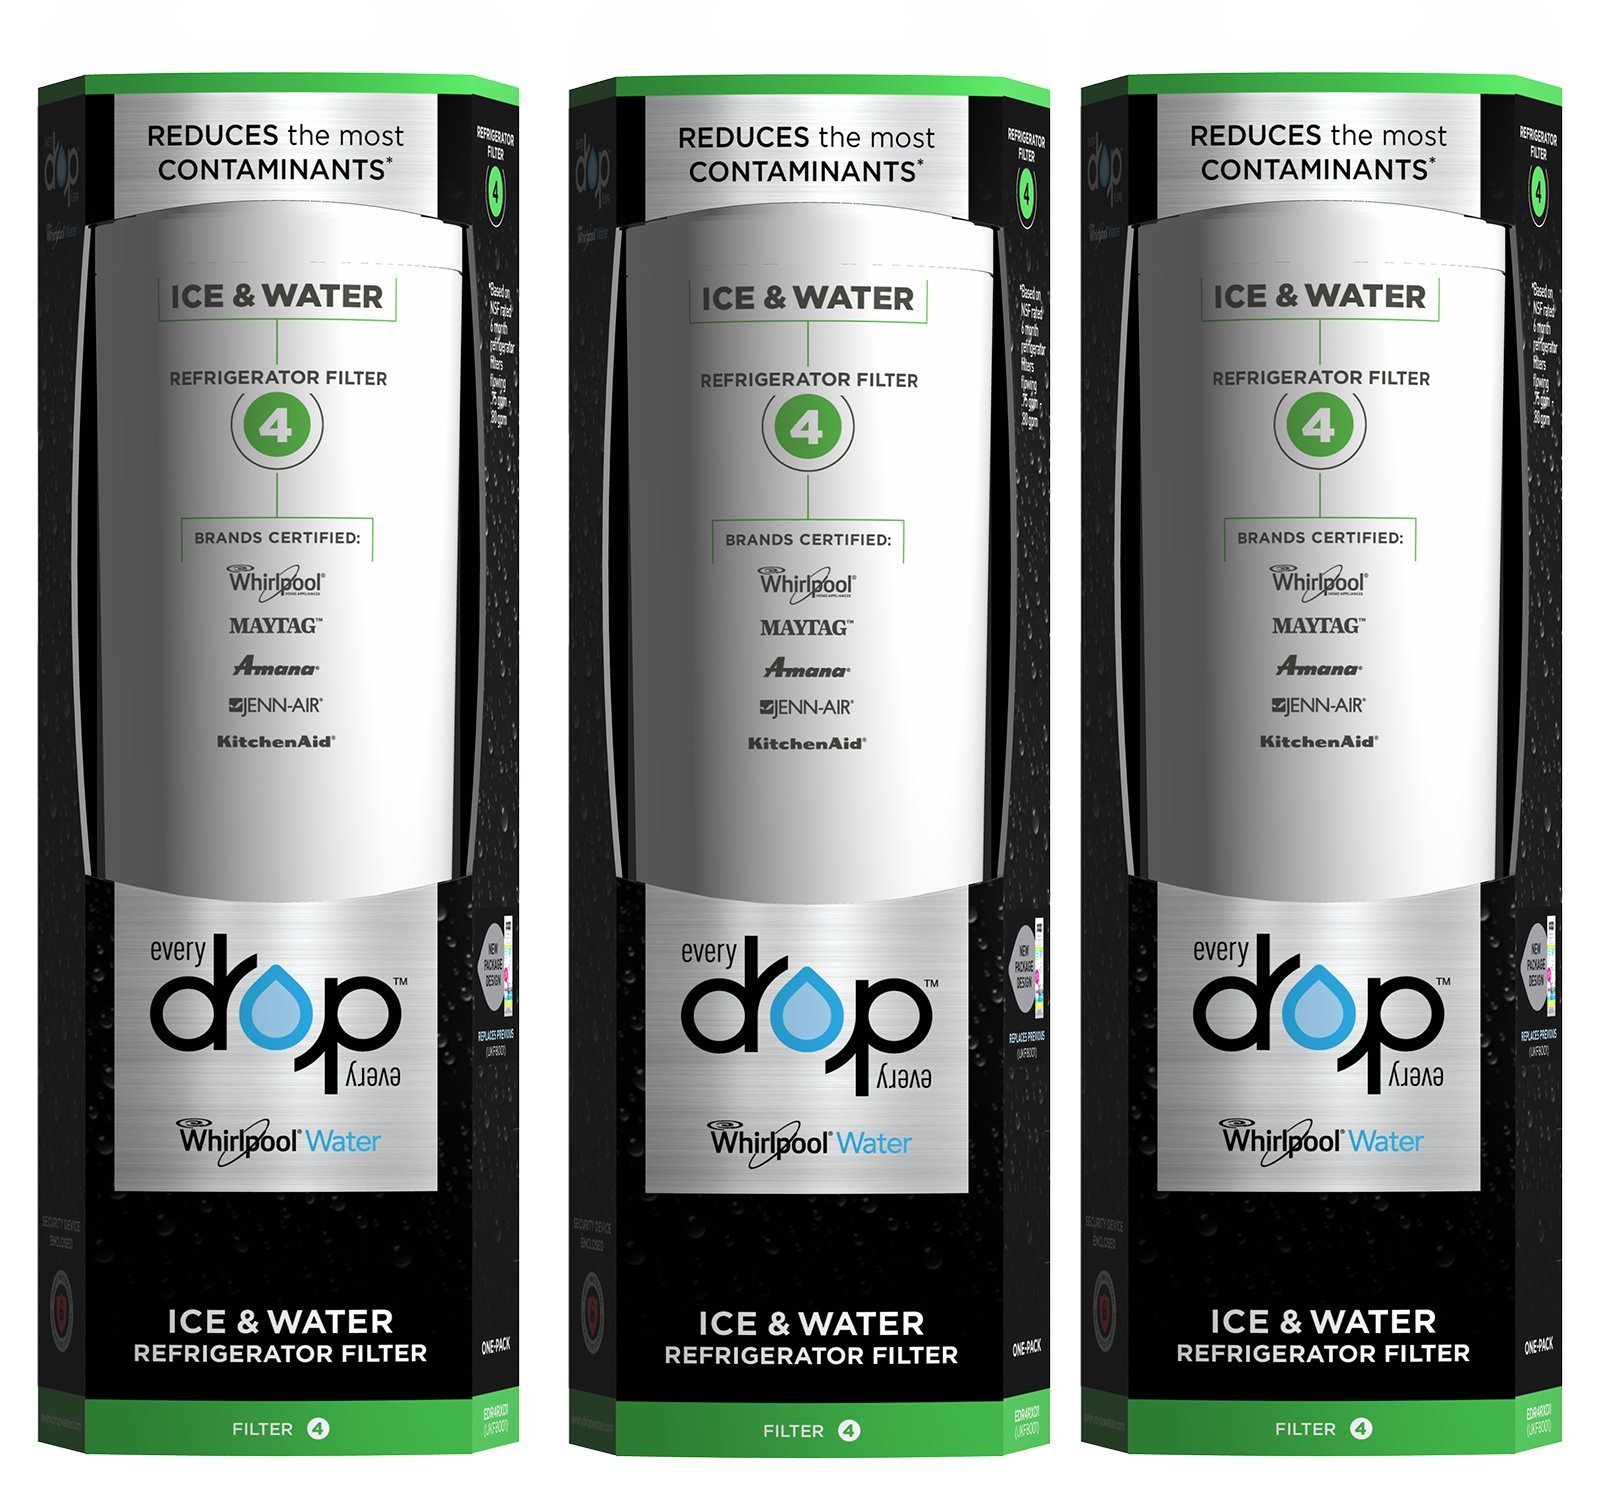 EveryDrop by Whirlpool Refrigerator Water Filter 4 (Pack of 3)